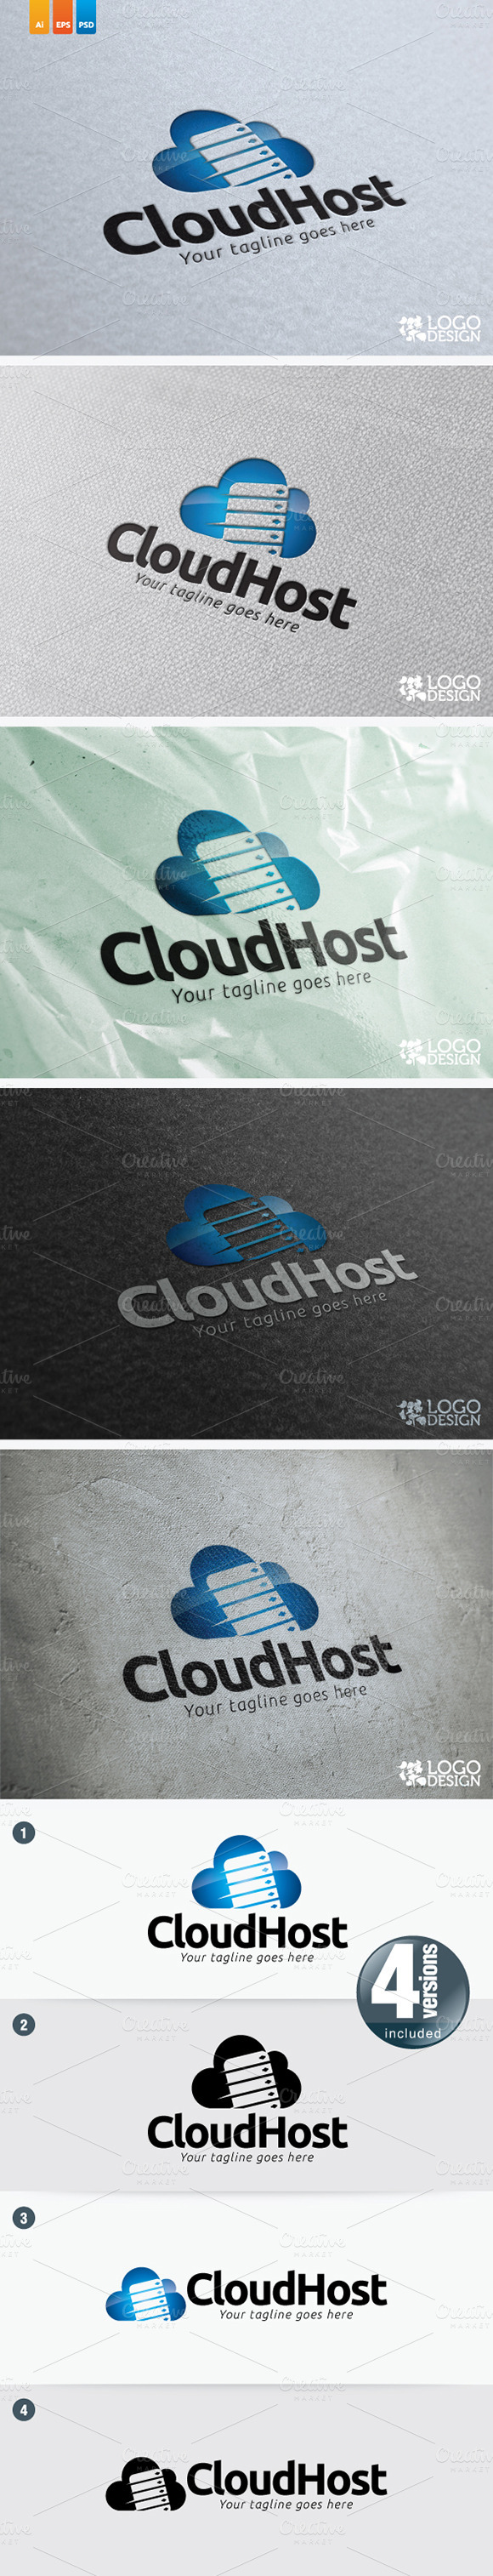 Cloud Host